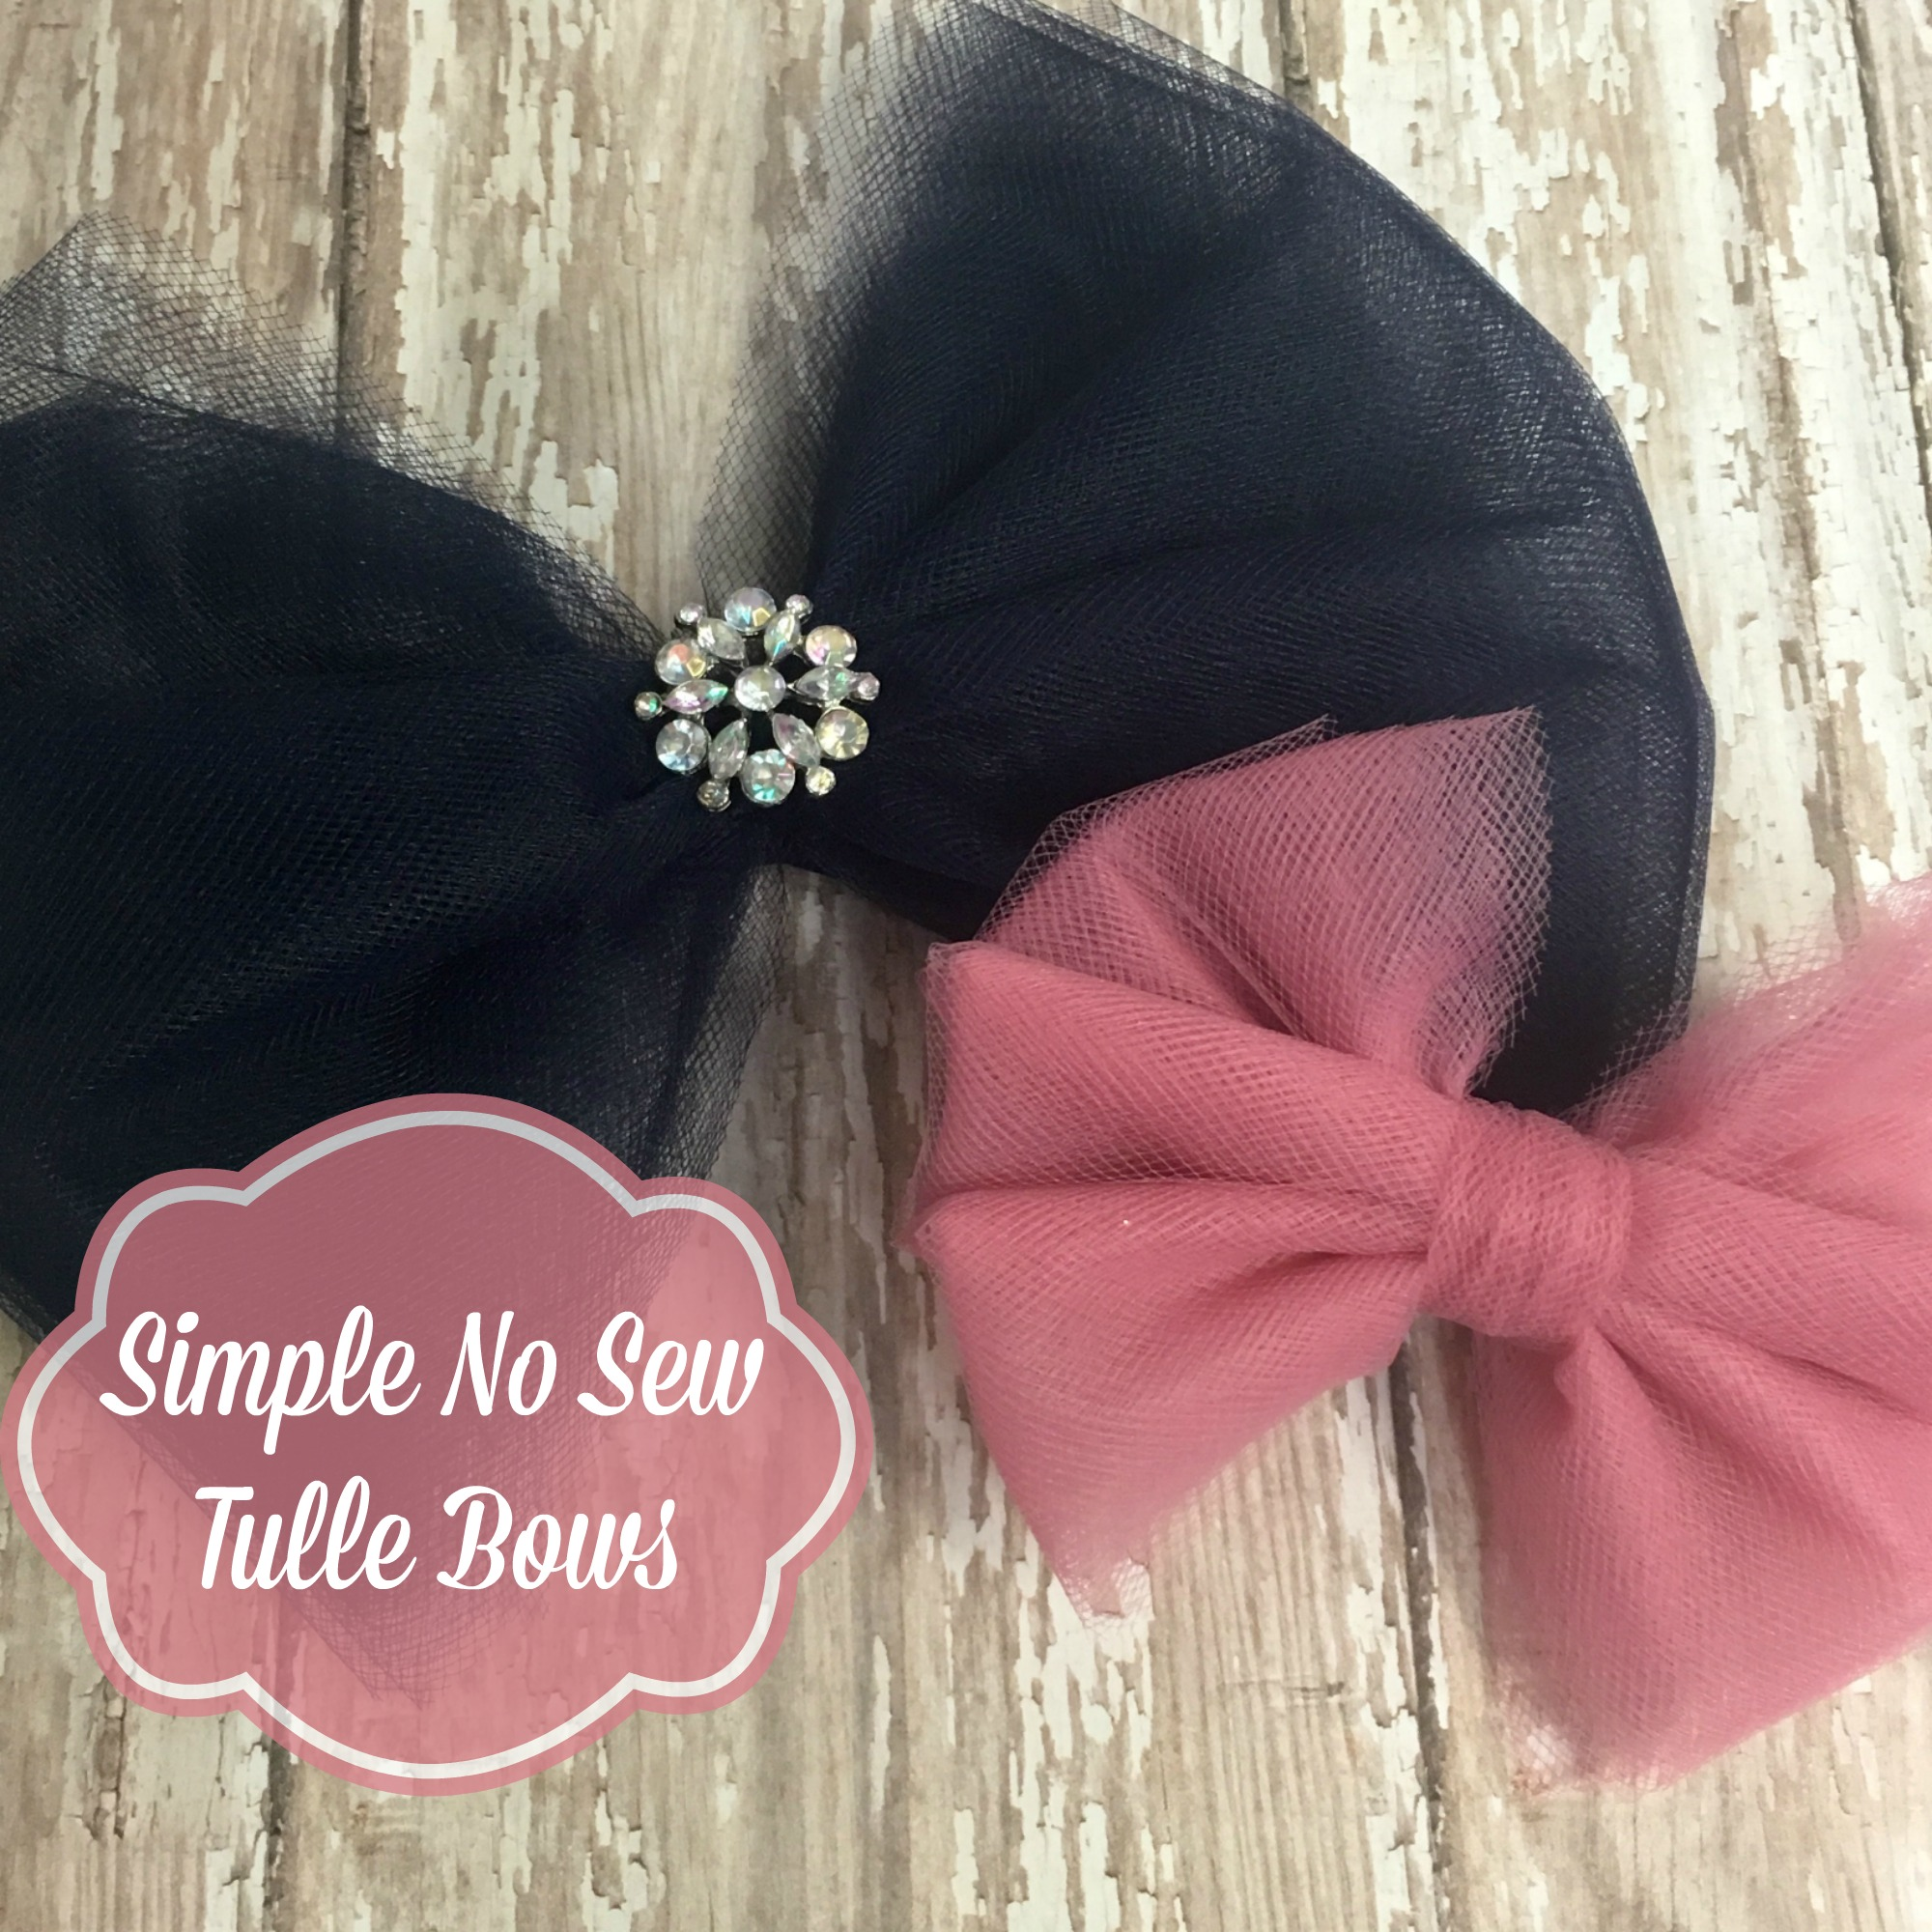 1d7f4327377a Tulle Hair Bow | How to make No Sew Tulle Bows in 7 Simple Steps ...